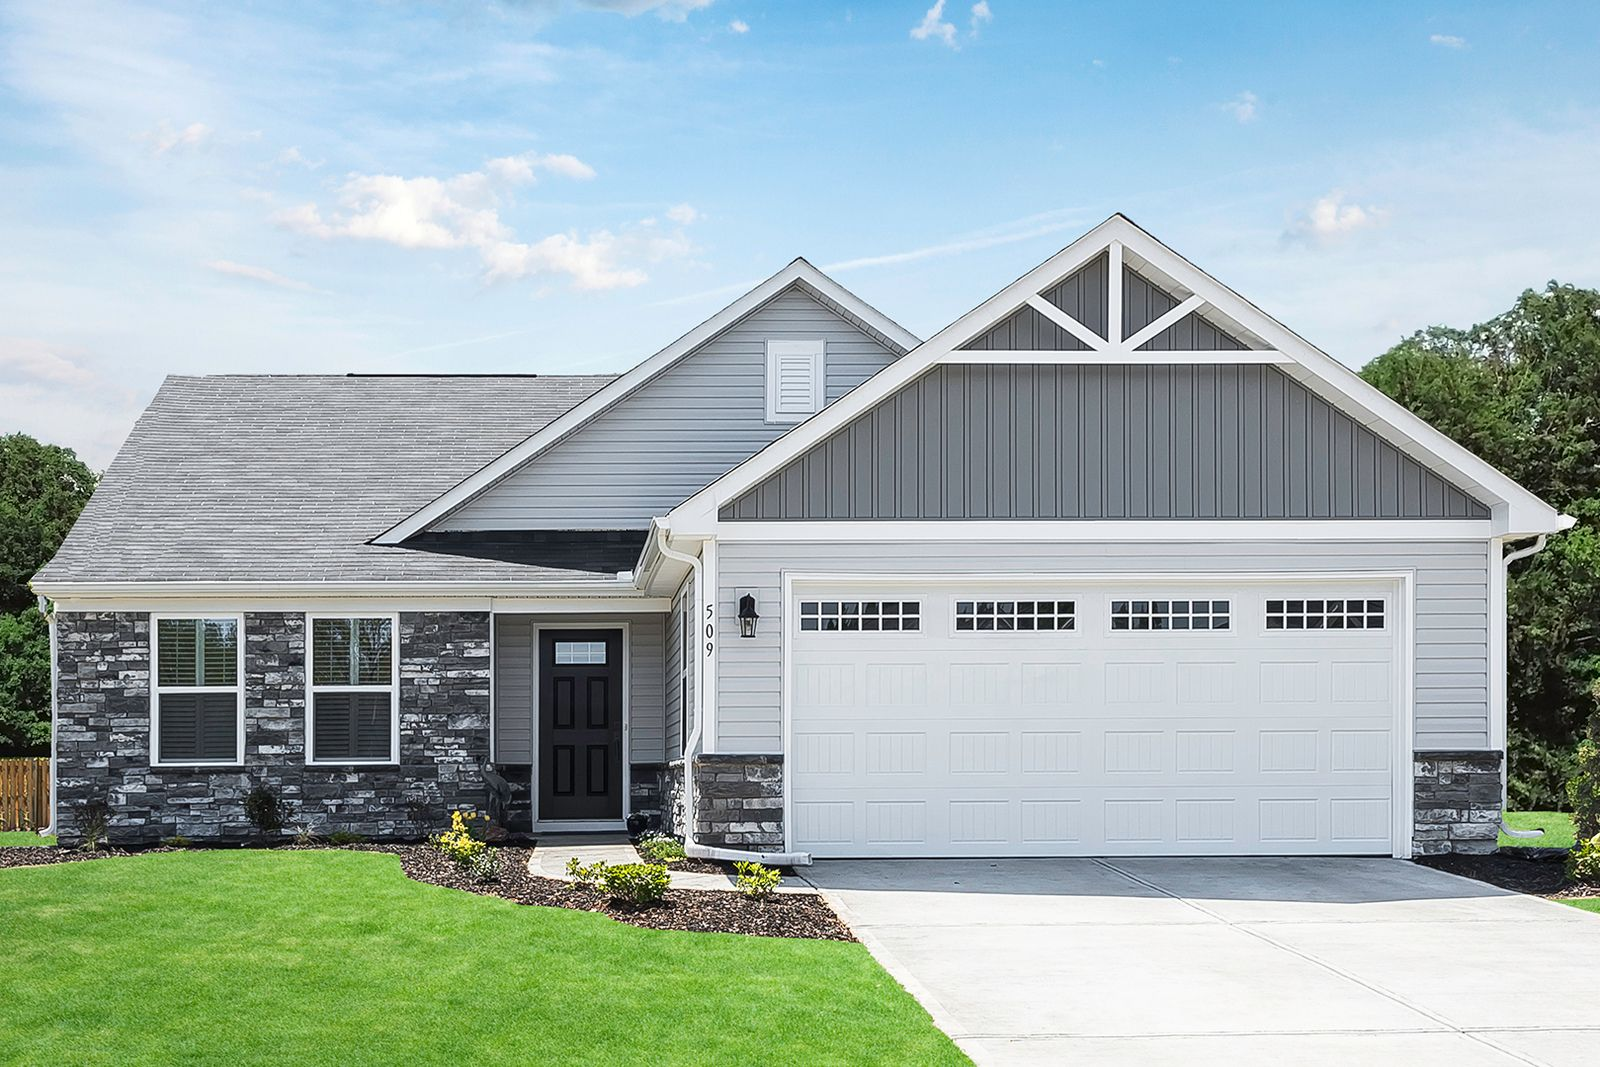 Welcome home to CARRIAGE TRAILS RANCHES!:Lowest-price new construction ranches in Tipp City near I-70 & WPAFB. Lawn care included! Tree-lined homesites with walking paths. Low taxes—from the $220s.Click tolearn more about the community.